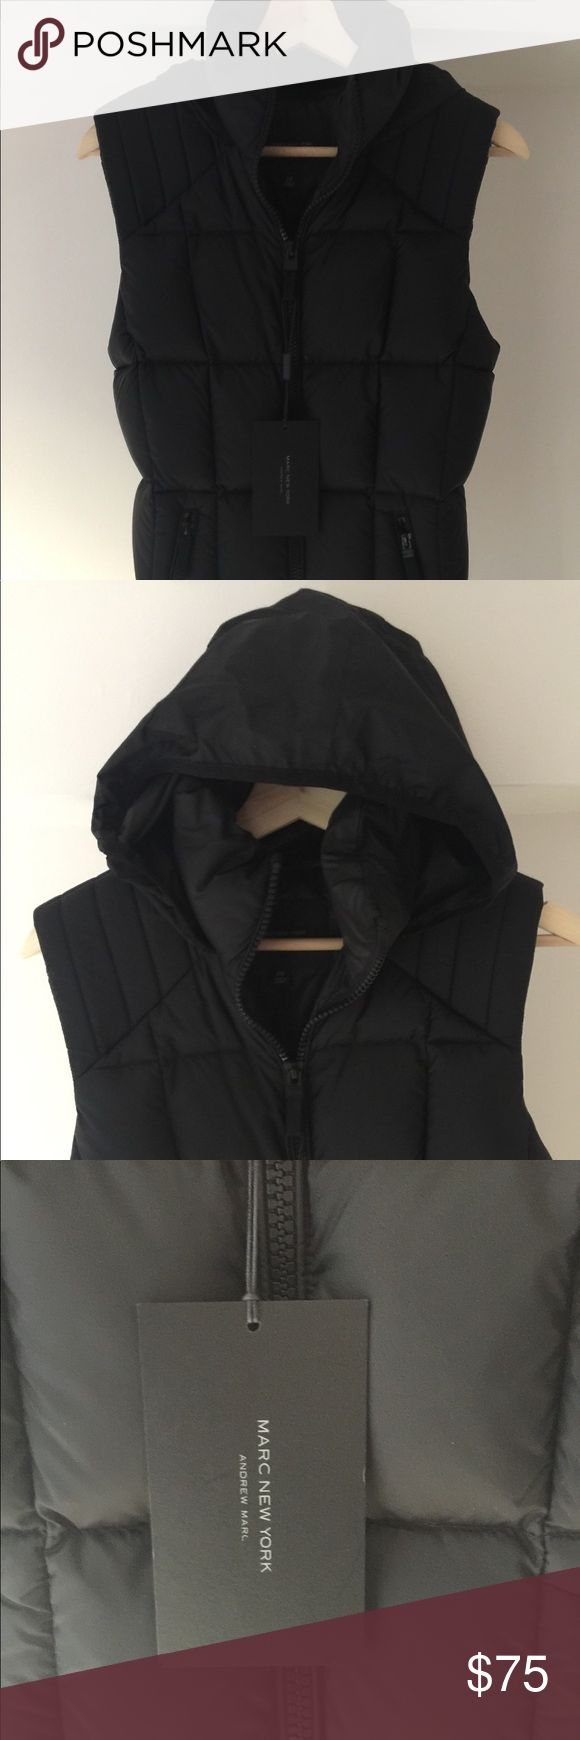 Marc New York by Andrew Women's Mikaela, NWT Brand New With Tags SOLD OUT Marc New York 'Mikayla' Vest, XS, Black  Purchased from Bloomingdales September 2017 Purchased for US$130 & Tax Marc New York Jackets & Coats Vests